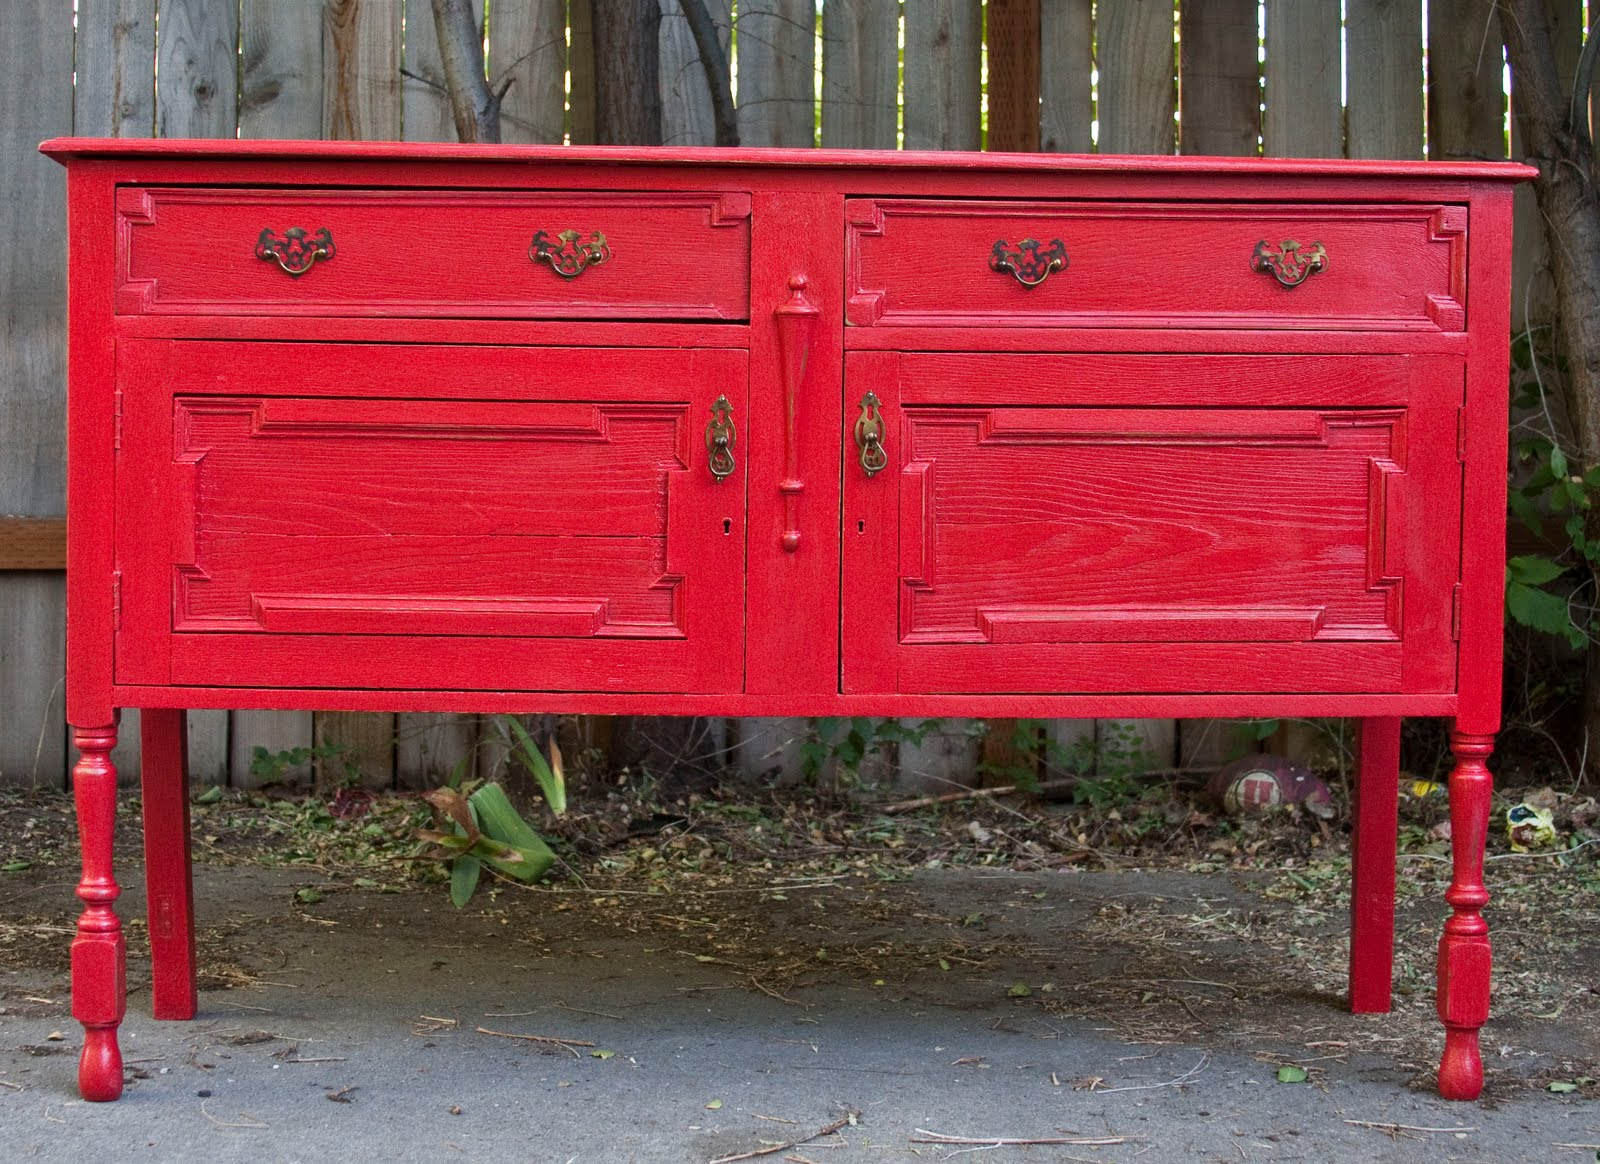 Antique buffet table furniture - Shabby Chic Bright Red Antique Buffet